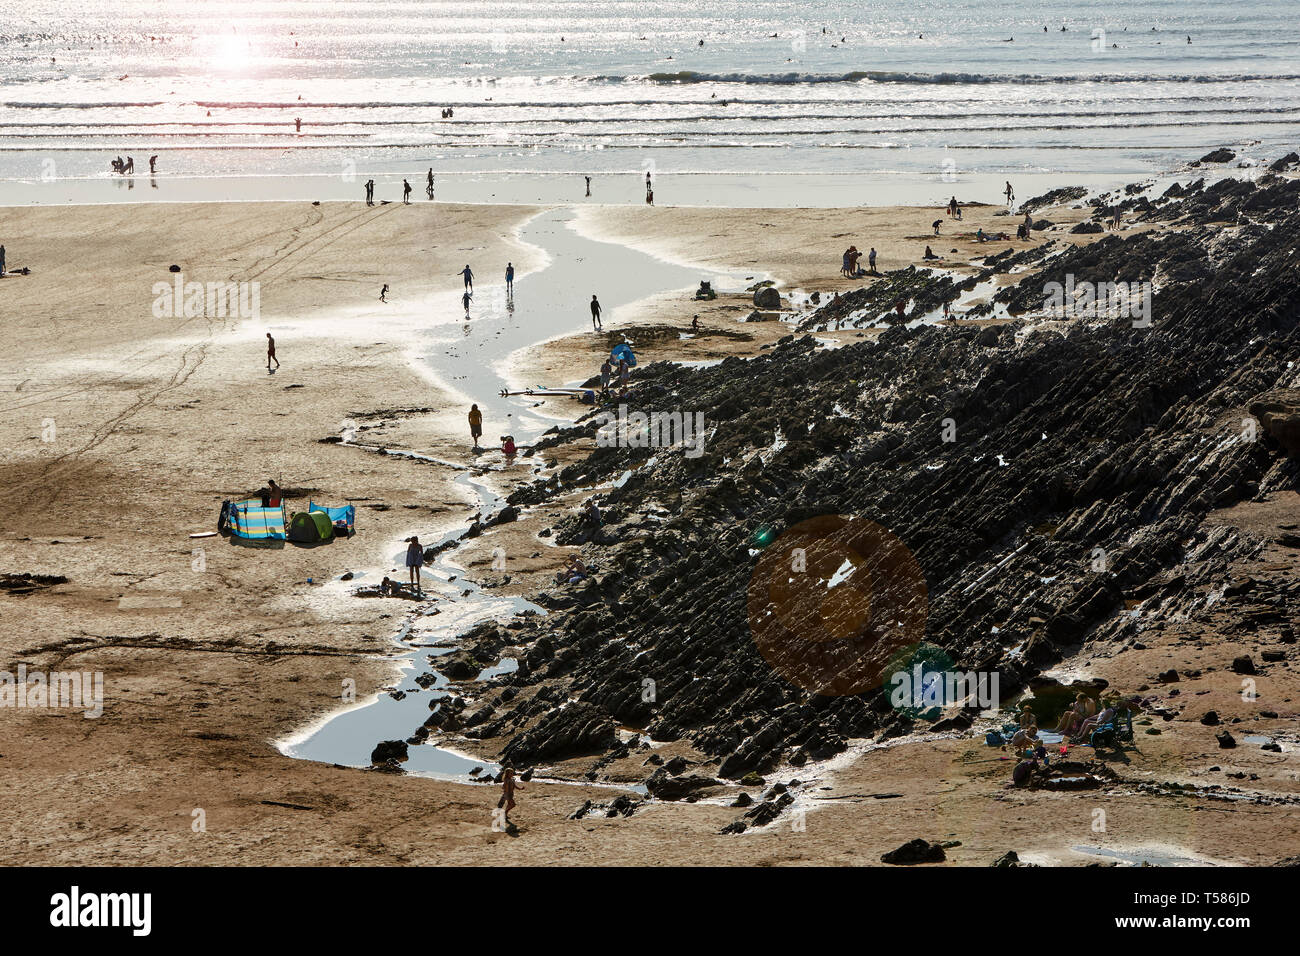 Elevated view of Tourists on Saunton Sands beach in North Devon during Easter 2019 heat wave with surf - Stock Image